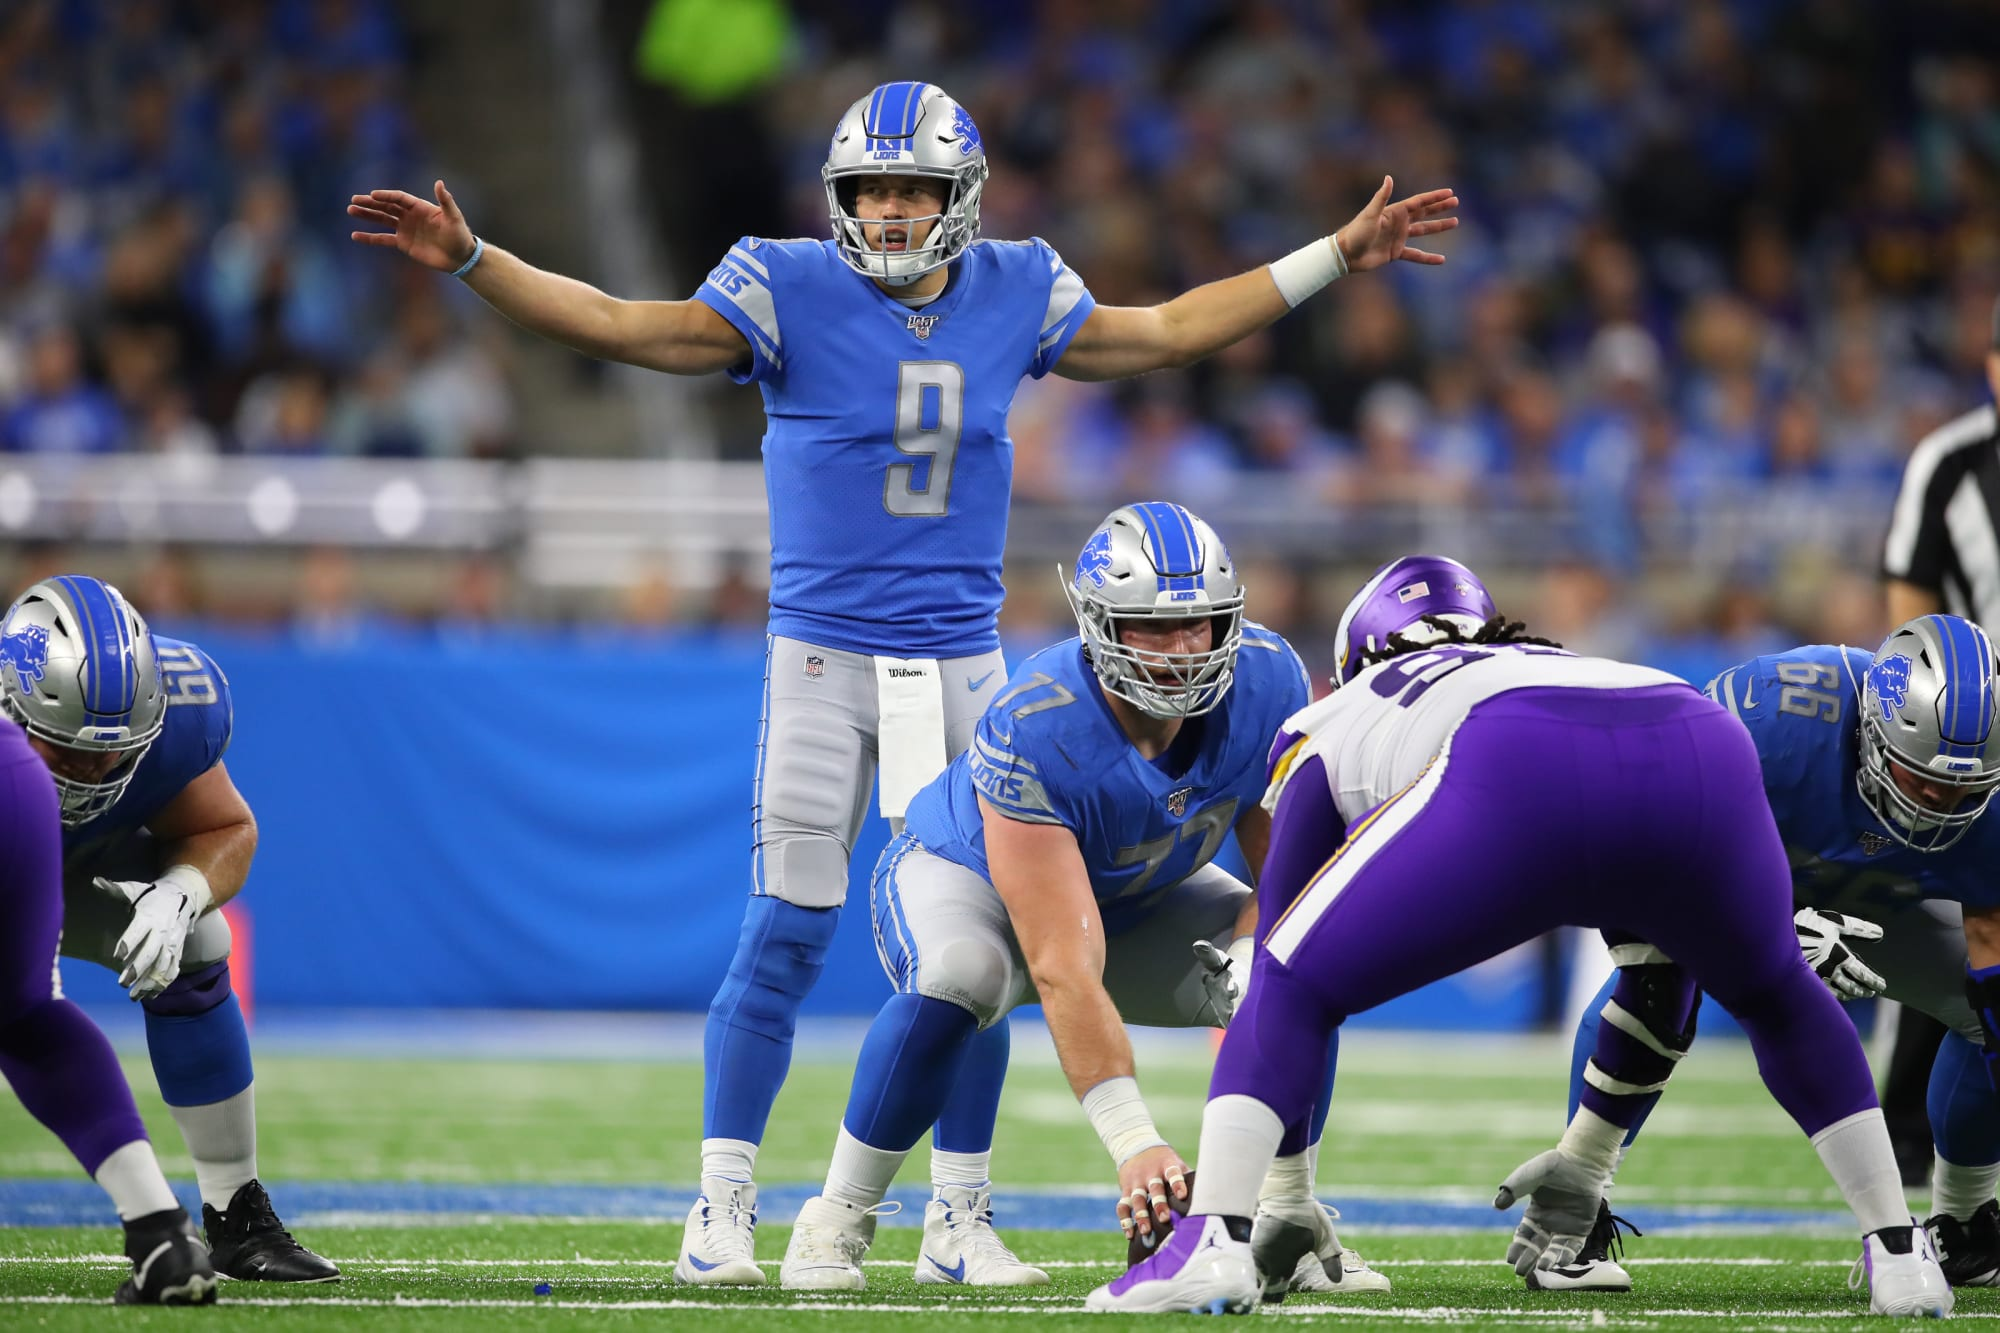 Detroit Lions: New regime primed to build new identity